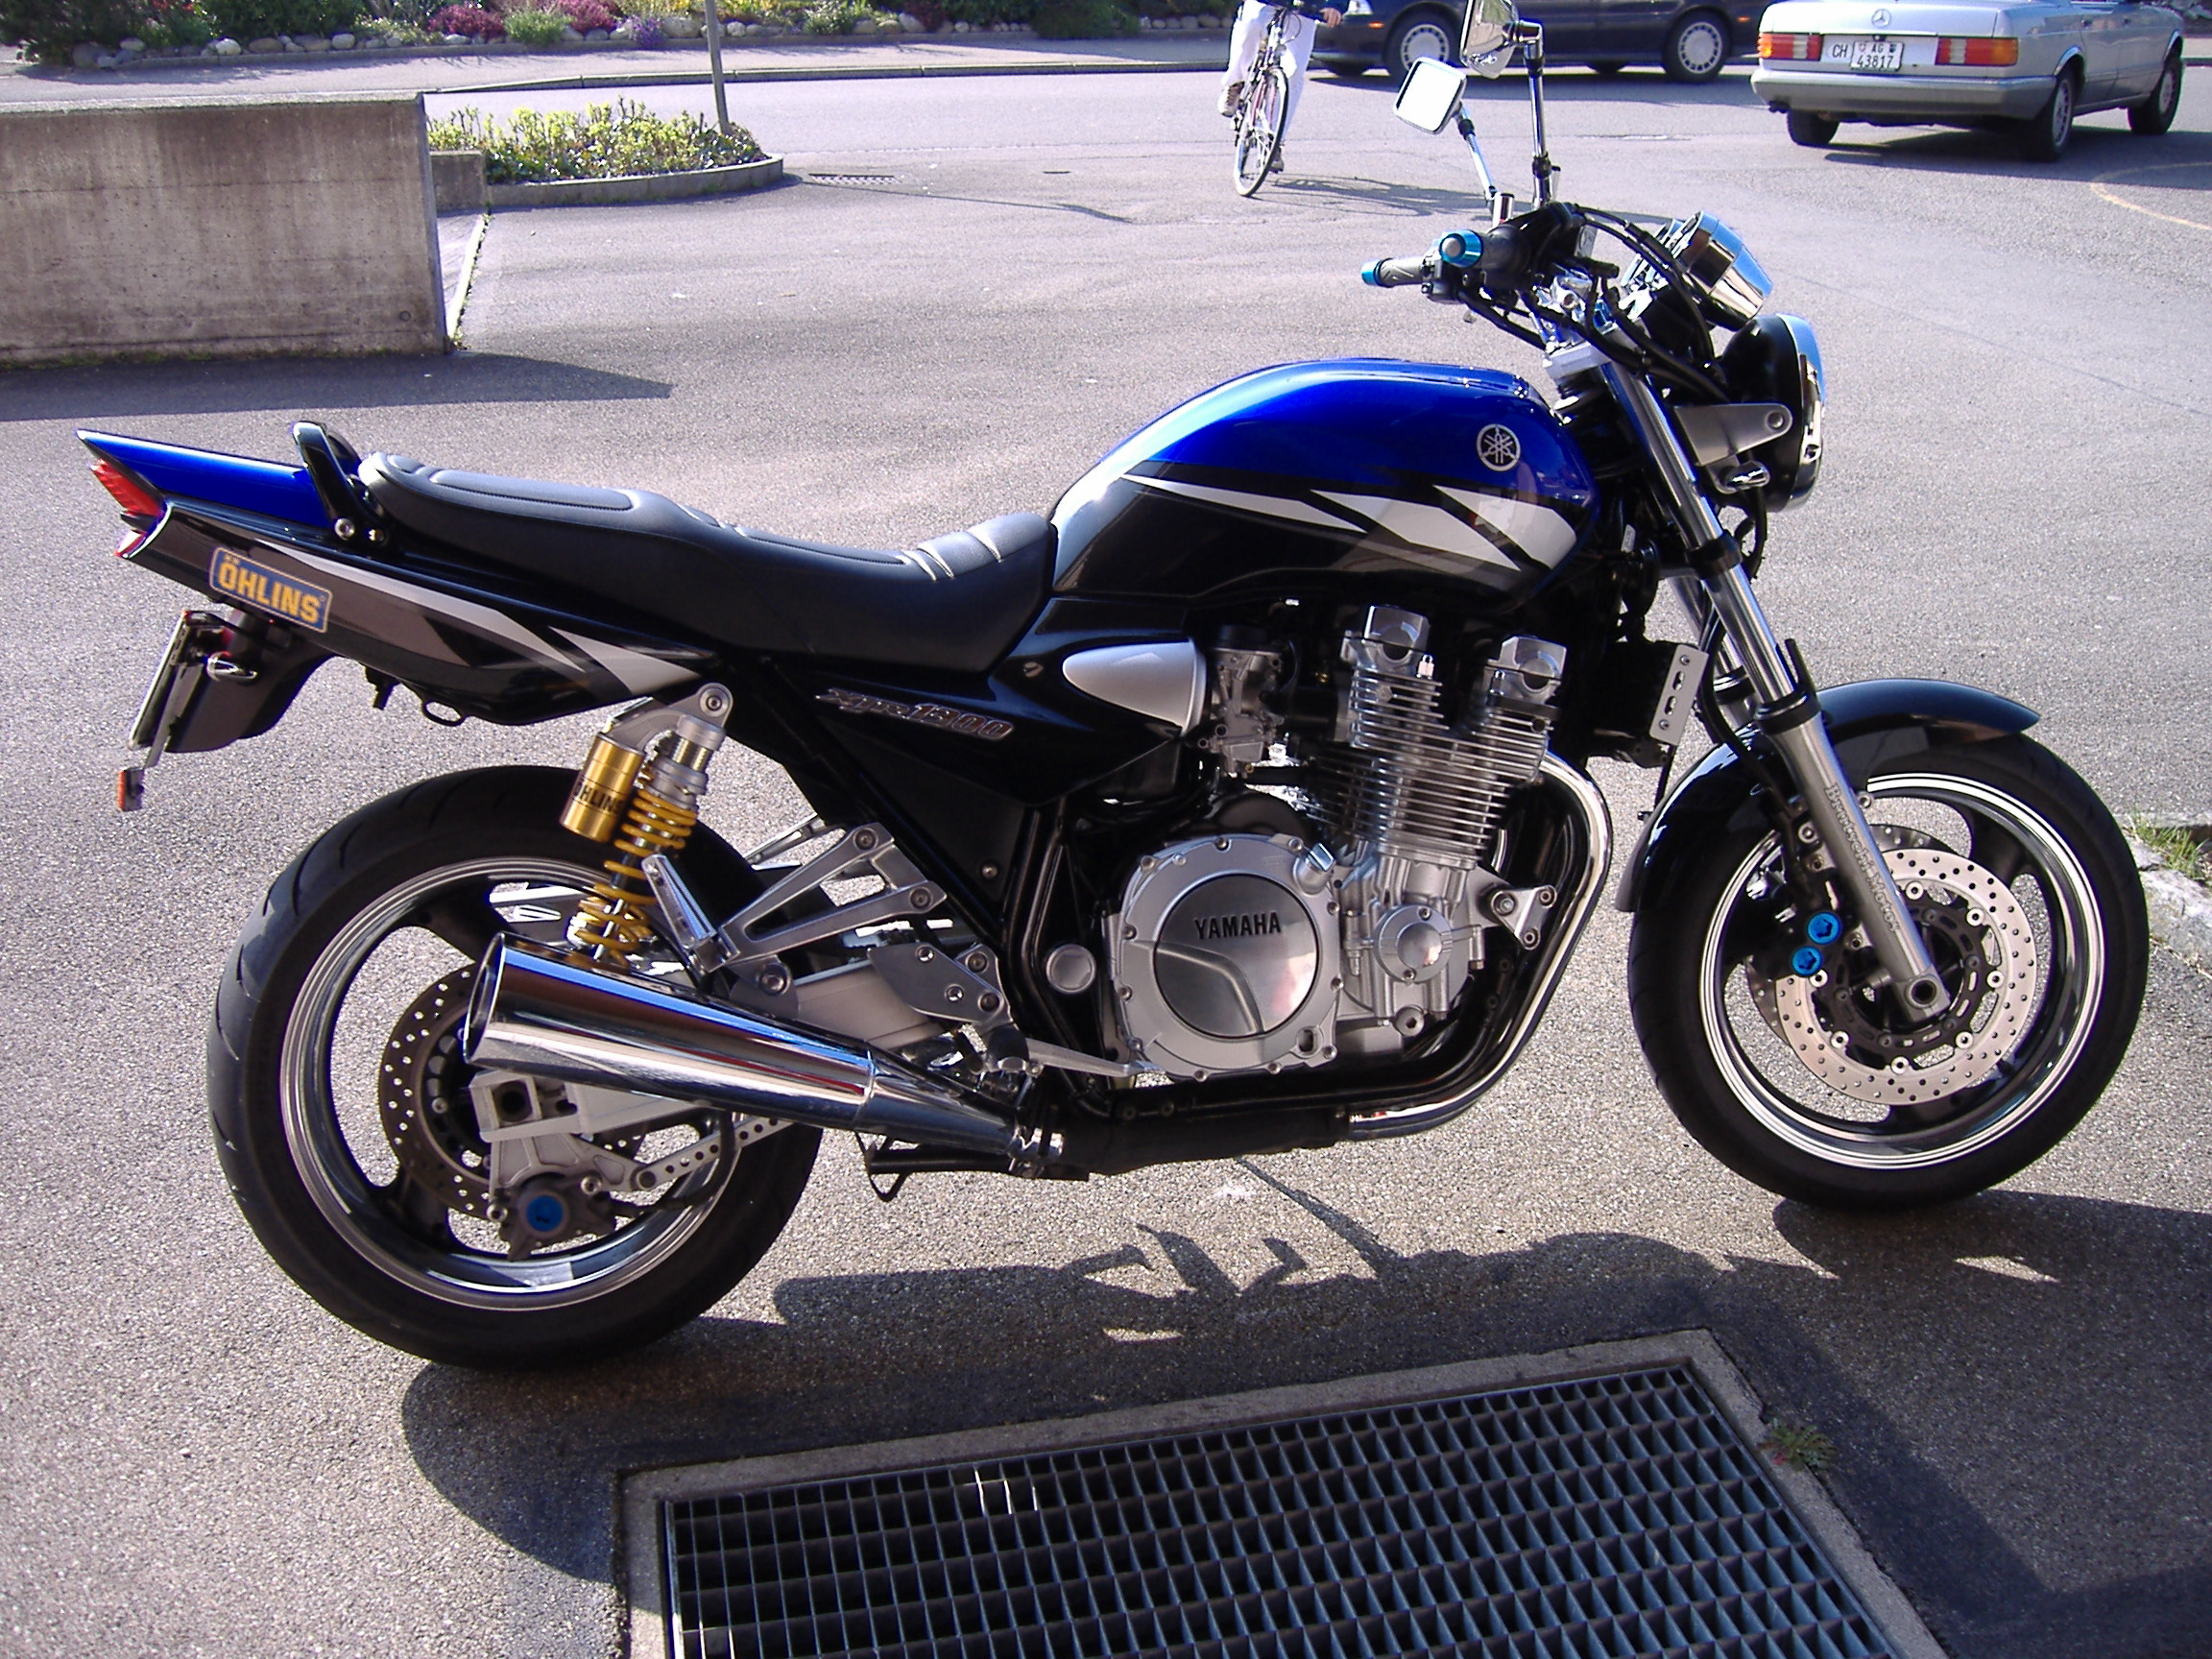 file yamaha xjr 1300 jg wikimedia commons. Black Bedroom Furniture Sets. Home Design Ideas